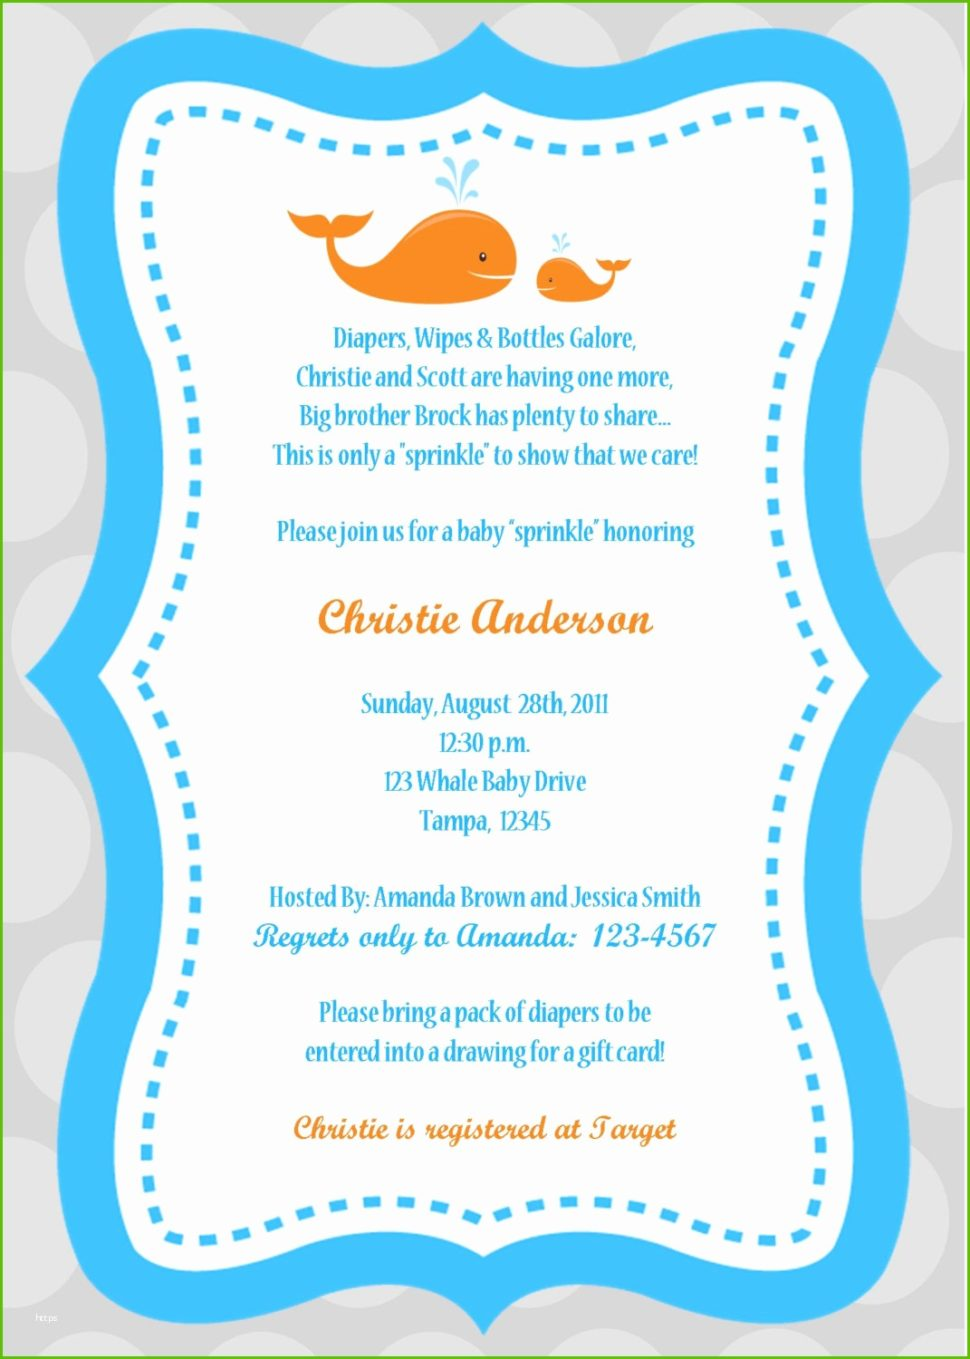 Medium Size of Baby Shower:delightful Baby Shower Invitation Wording Picture Designs Baby Shower Invitation Wording Who To Invite To Baby Shower Astonishing Baby Shower Invitation Wording For A Boy